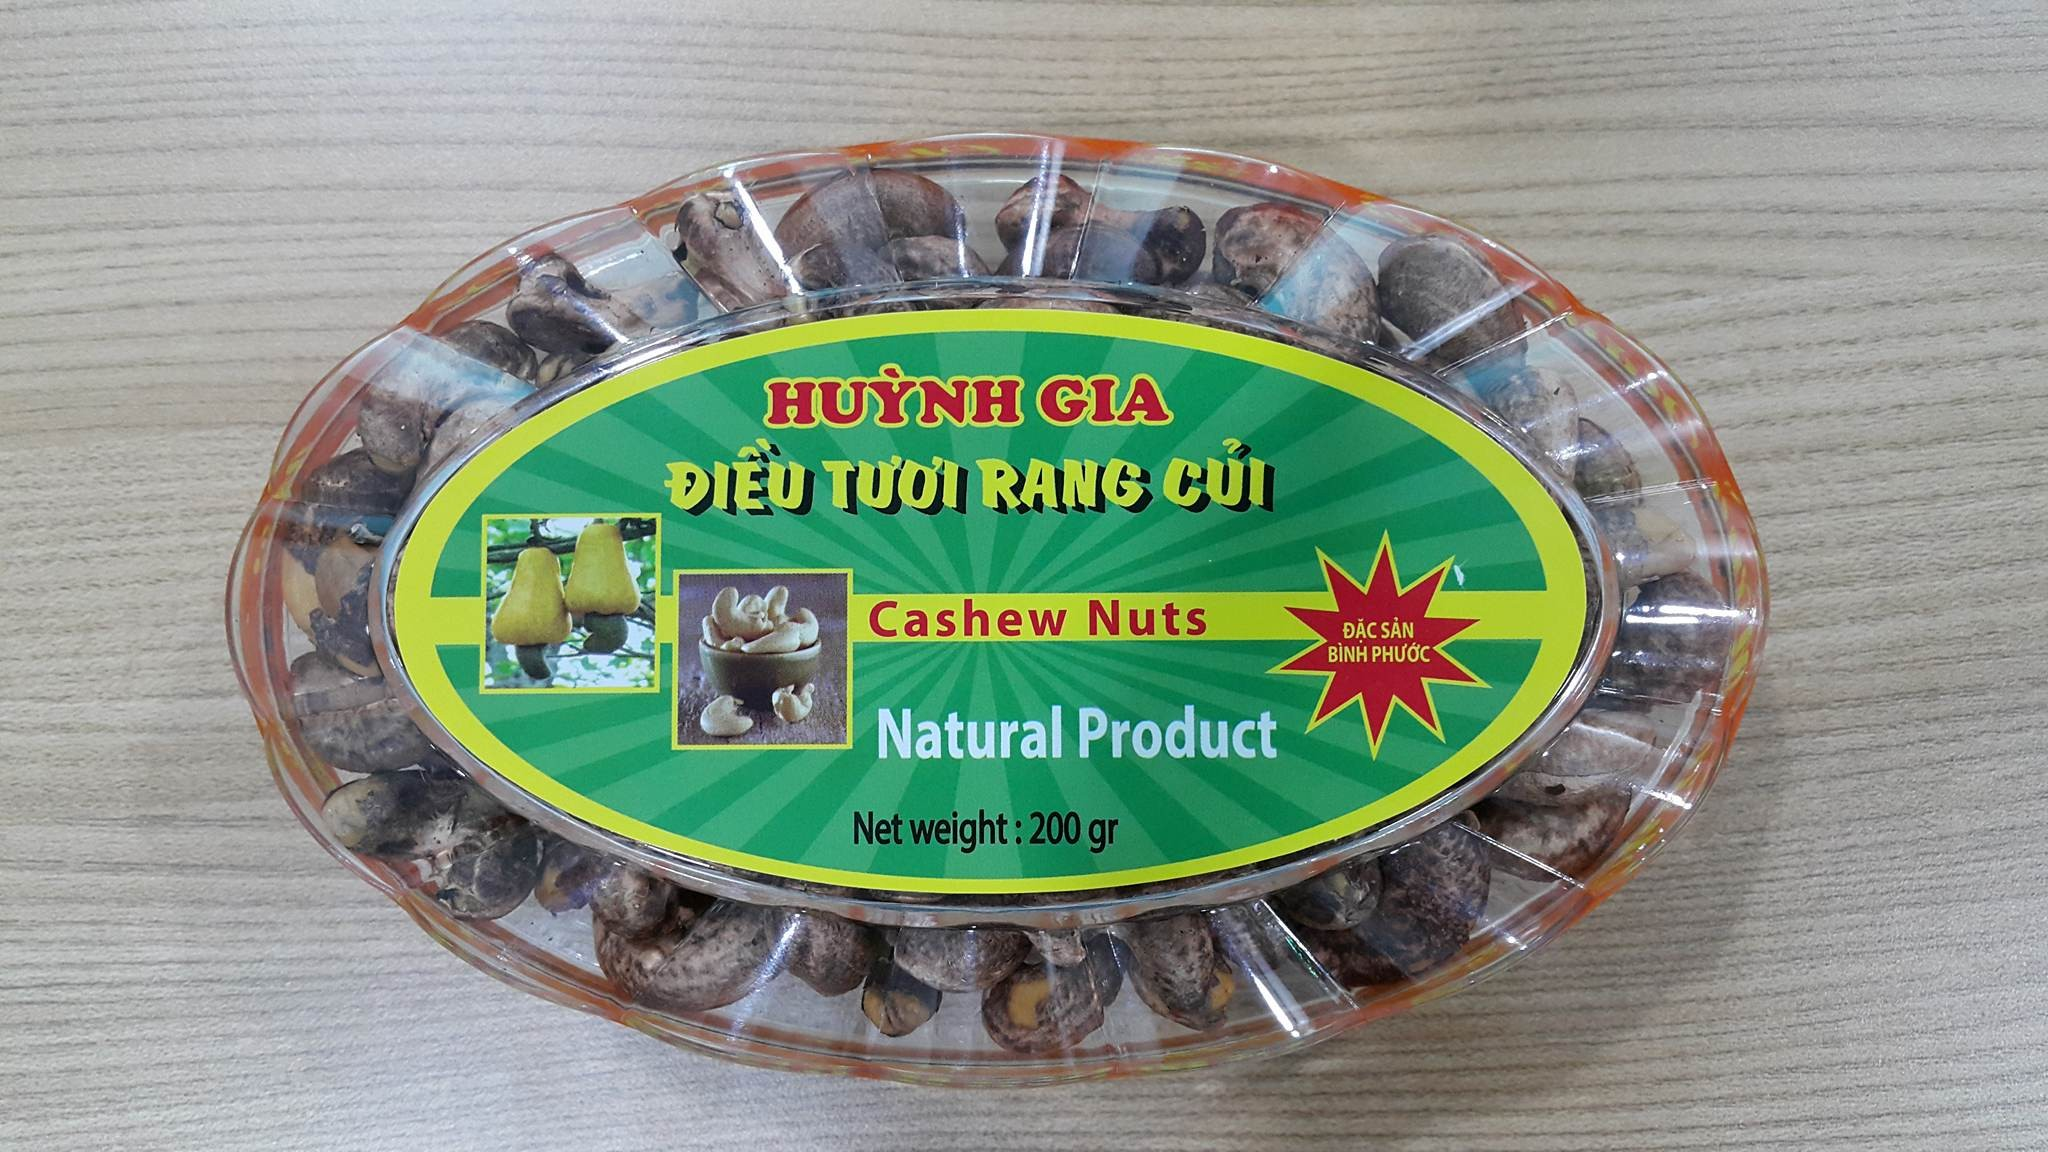 SALTED ROASTED CASHEW NUTS WITH SHELL VIET NAM